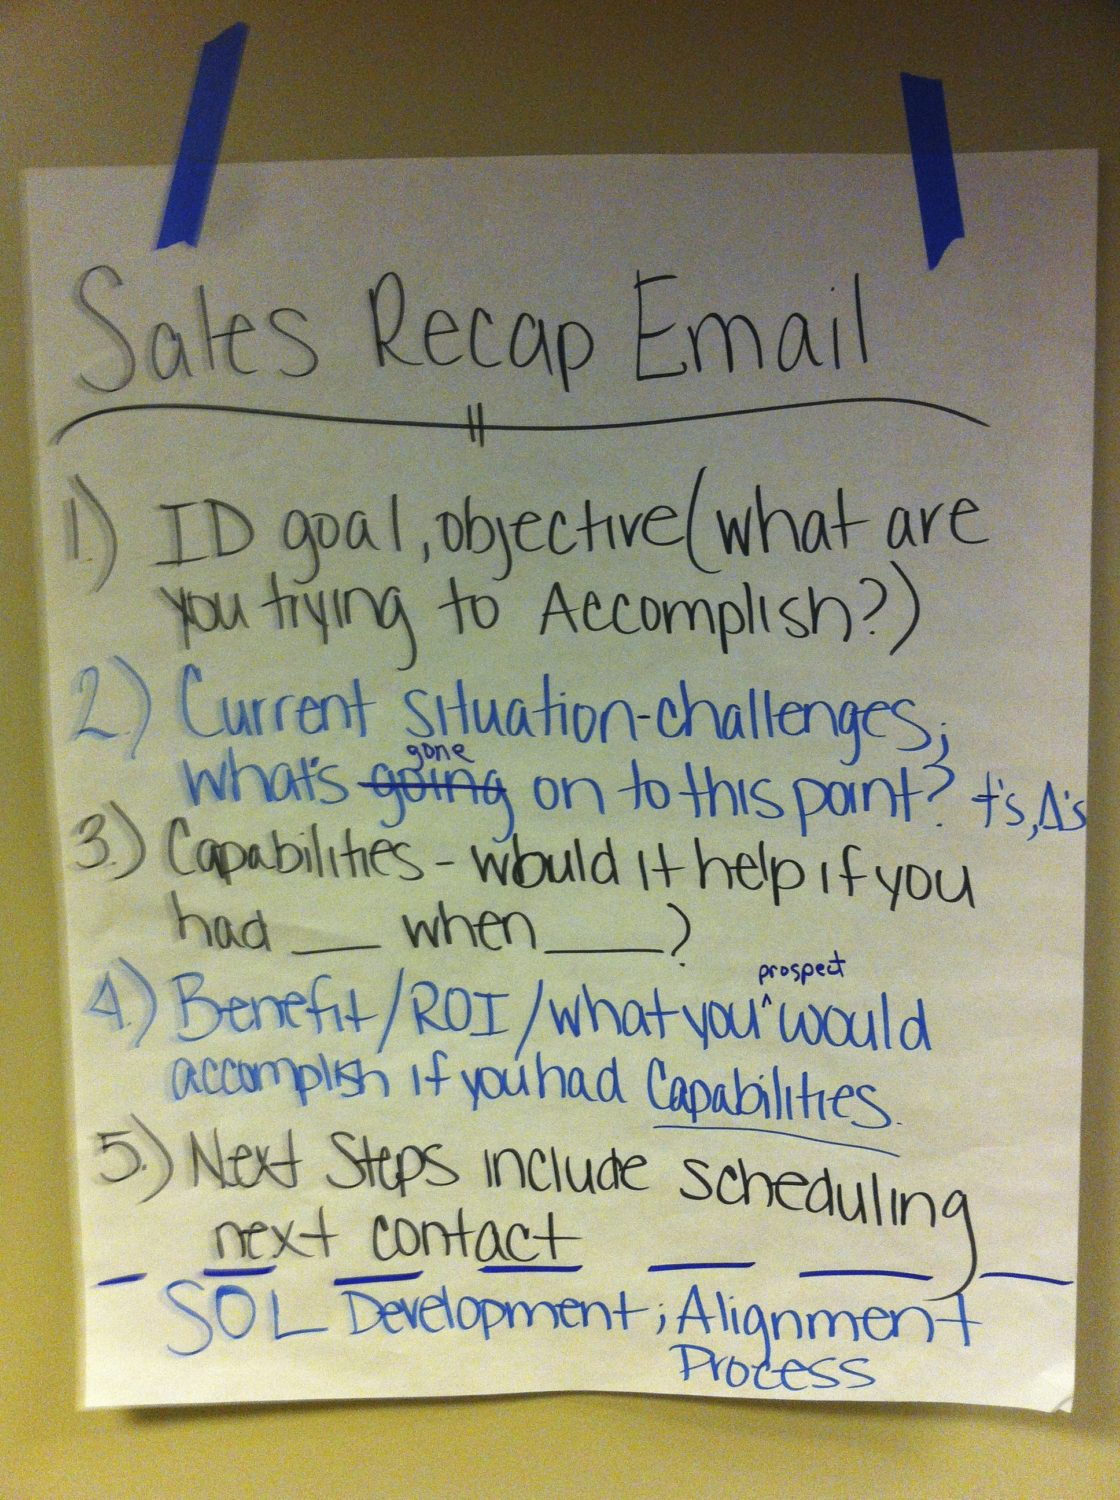 Elements of a Sales Recap Email